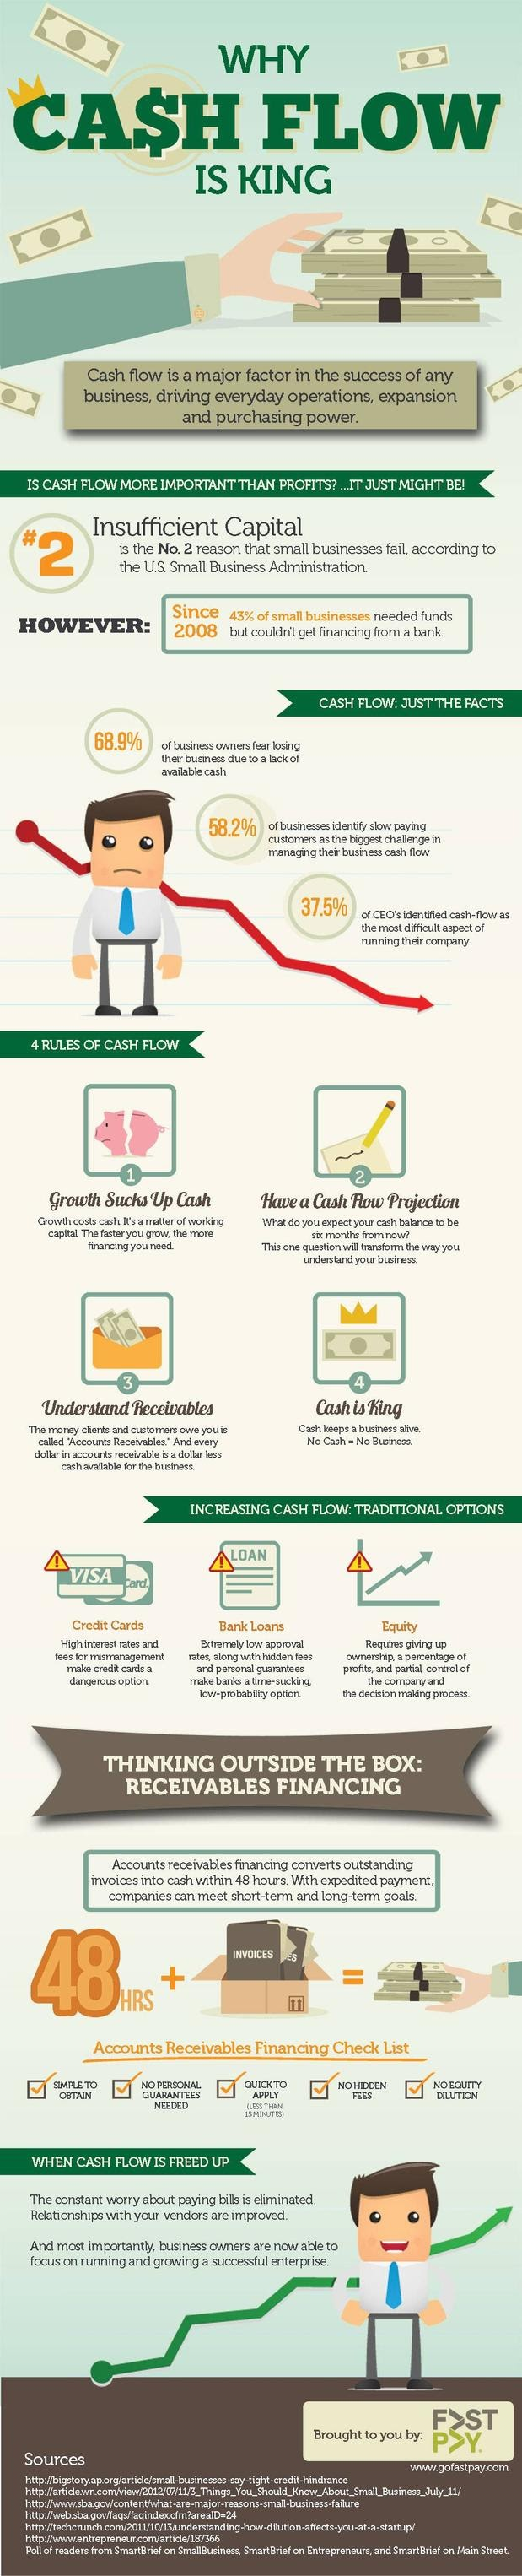 The Importance Of Cash Flow Management #infographic